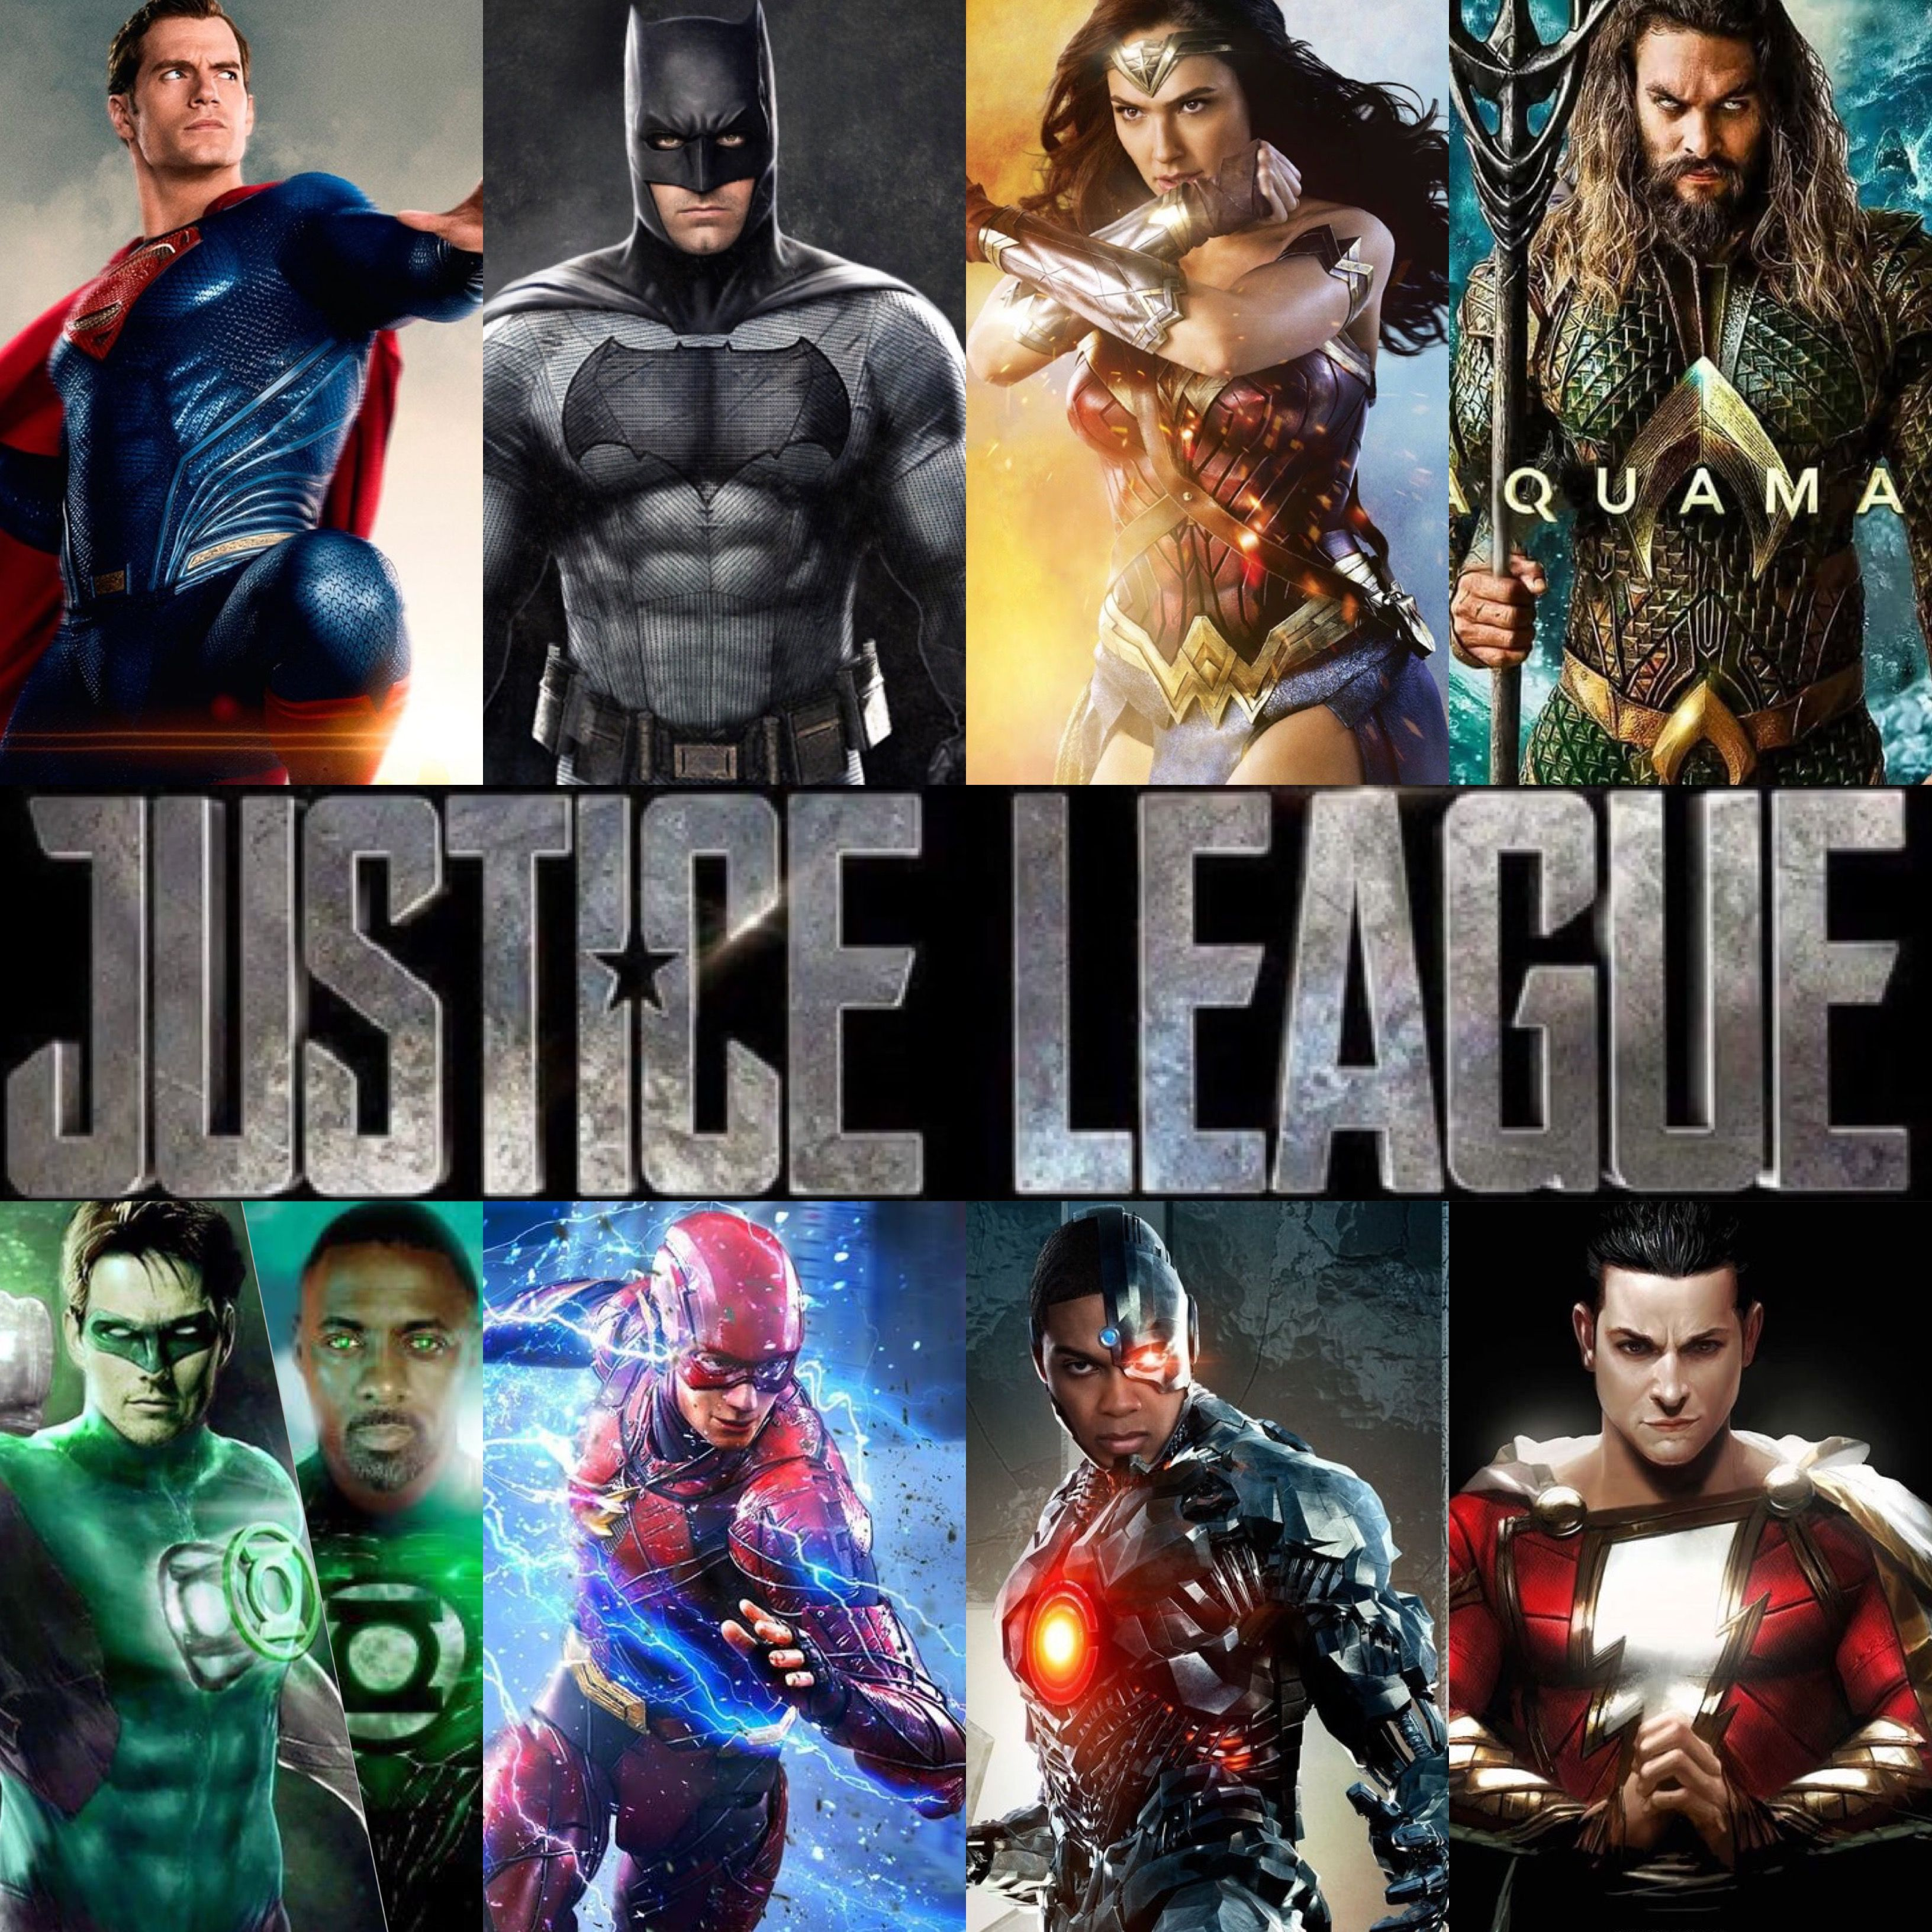 Justice League 2 With Such A Large Cast Of Villains As Well I Think It Would Only Be Logical To Add 3 New Heroes Super Heroi Justice League Canecas Namorados